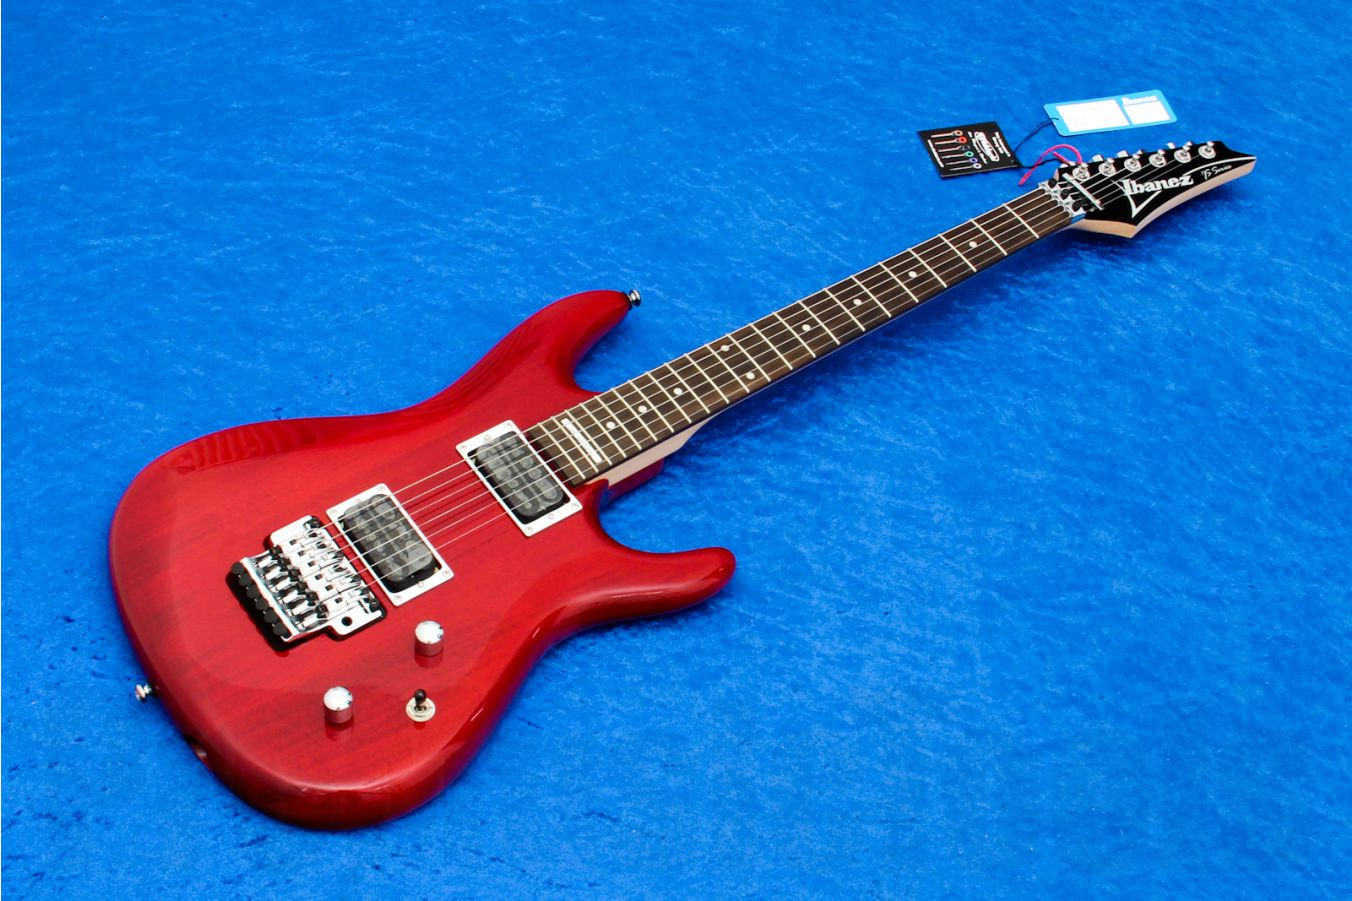 Ibanez JS100 TR - Transparent Red - Joe Satriani Signature - demo